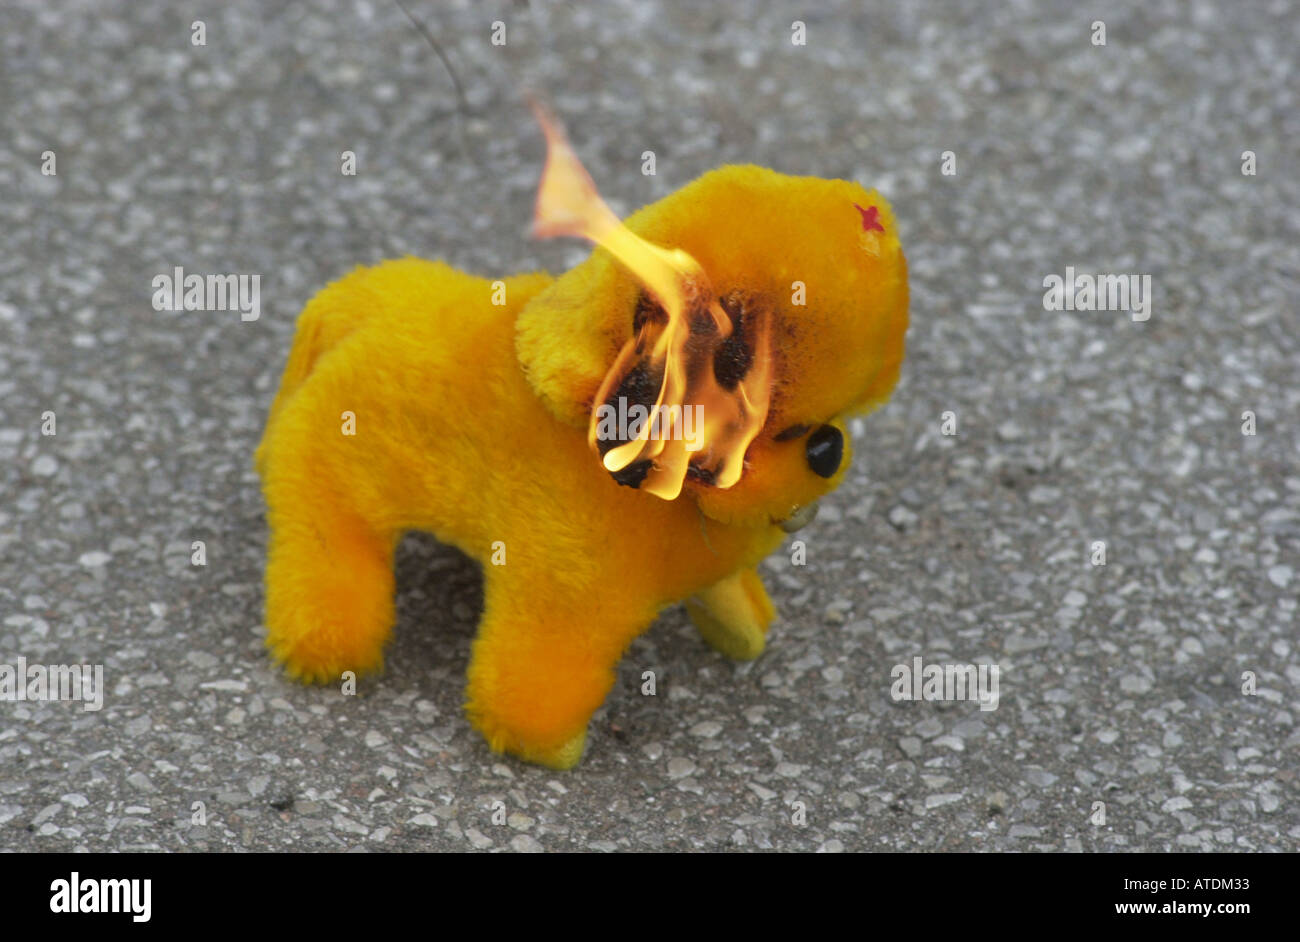 Dangerous flamable toy sold in the street at Christmas UK - Stock Image